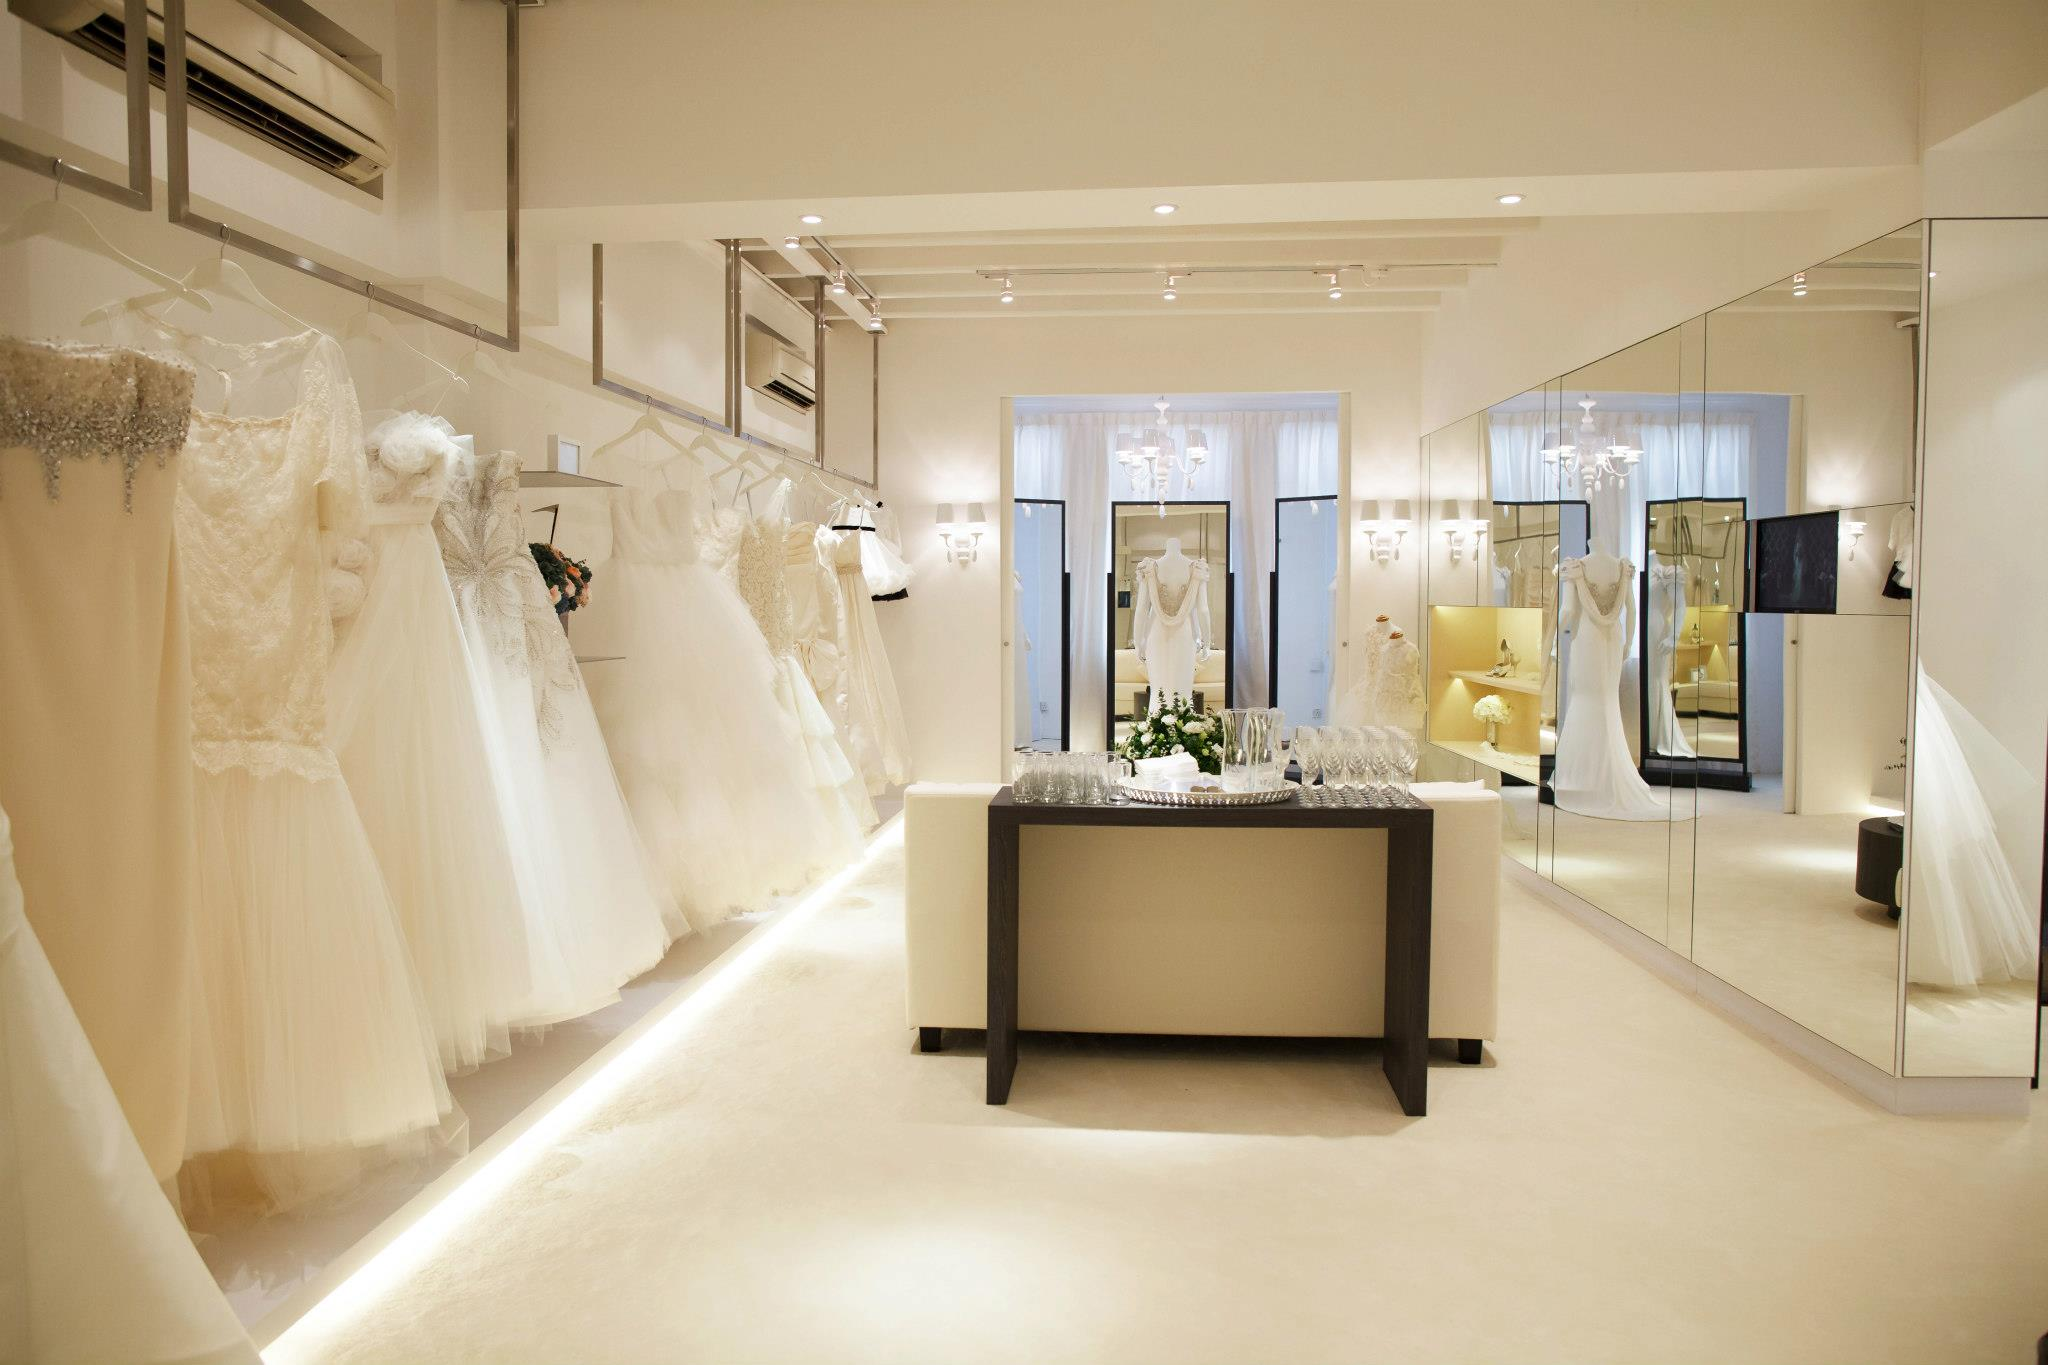 This multi-label bridal shop brings the world's finest designer wedding  gowns to Singapore. The Atelier Bridal houses famous bridal gown brands  such as ...